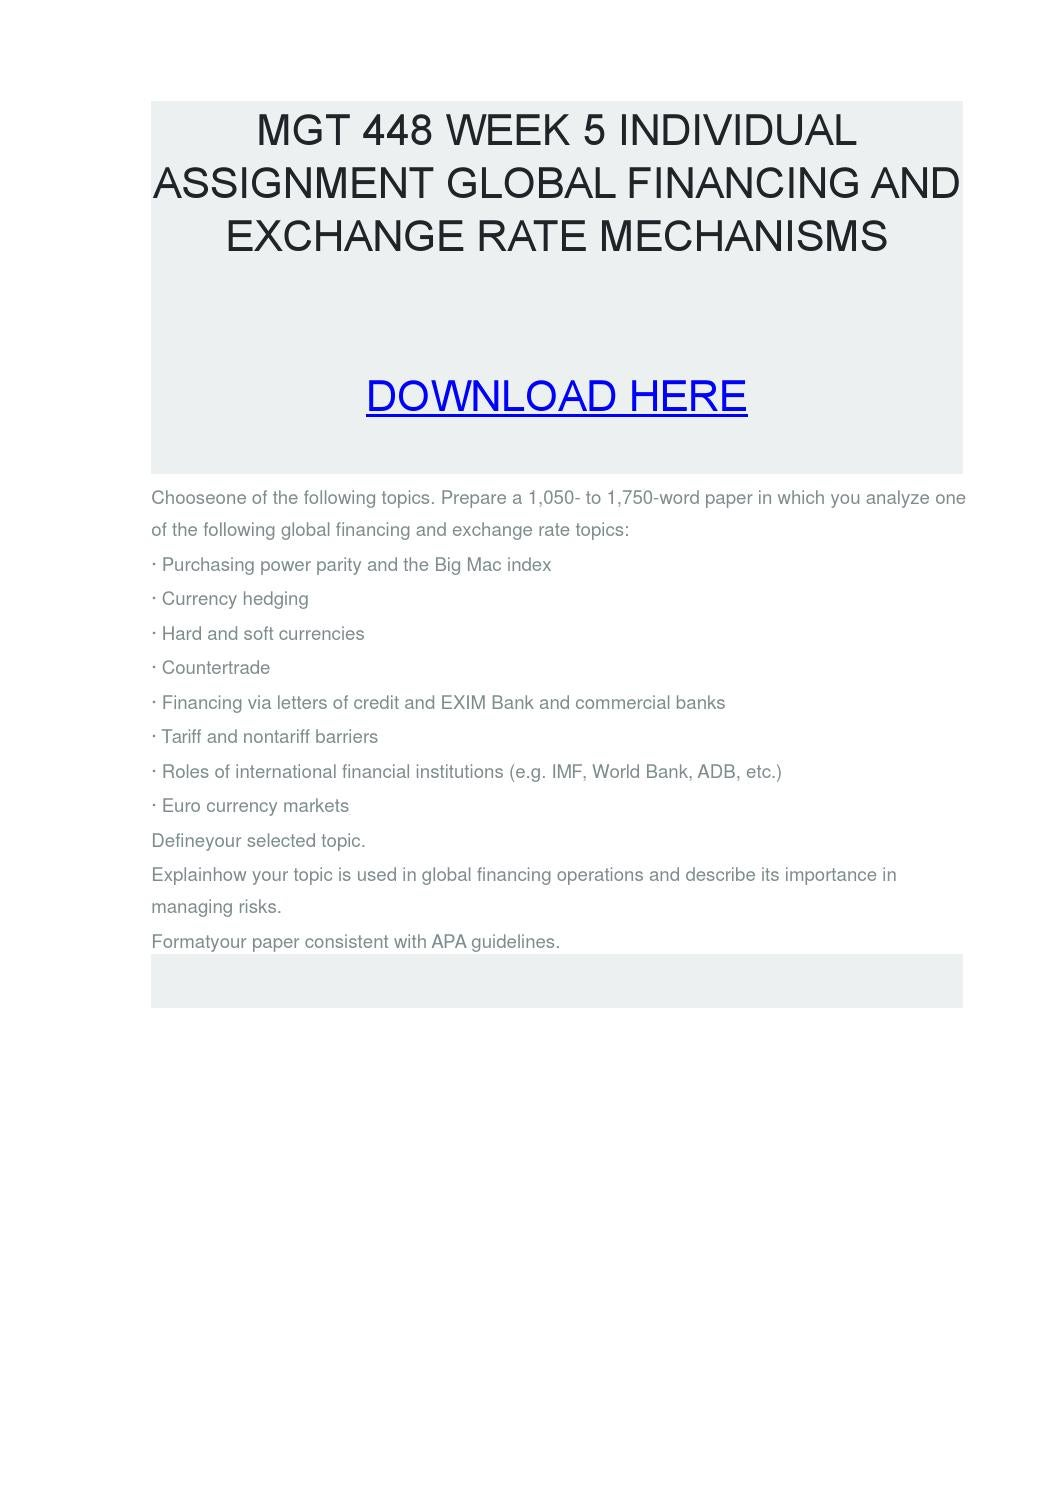 global financing and exchange rate mechanisms Global financing and exchange rate mechanisms currency hedging mgt 448 (3 pages | 981 words) global financing and exchange rate mechanisms.